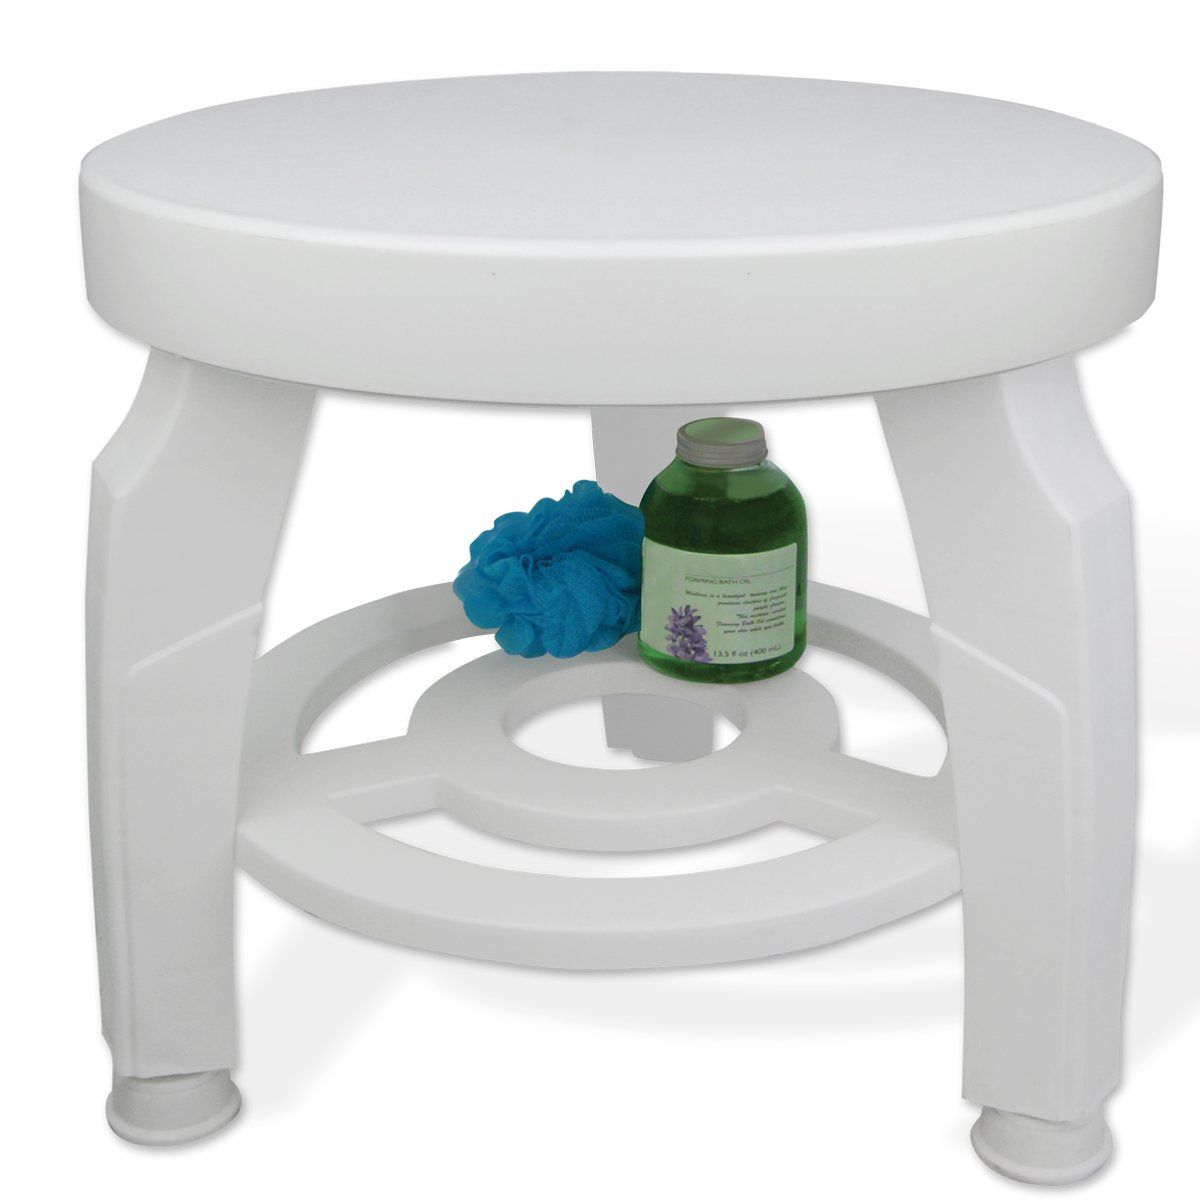 Amazon.com: Ideaworks JB5596 Swivel Shower Stool: Health & Personal Care